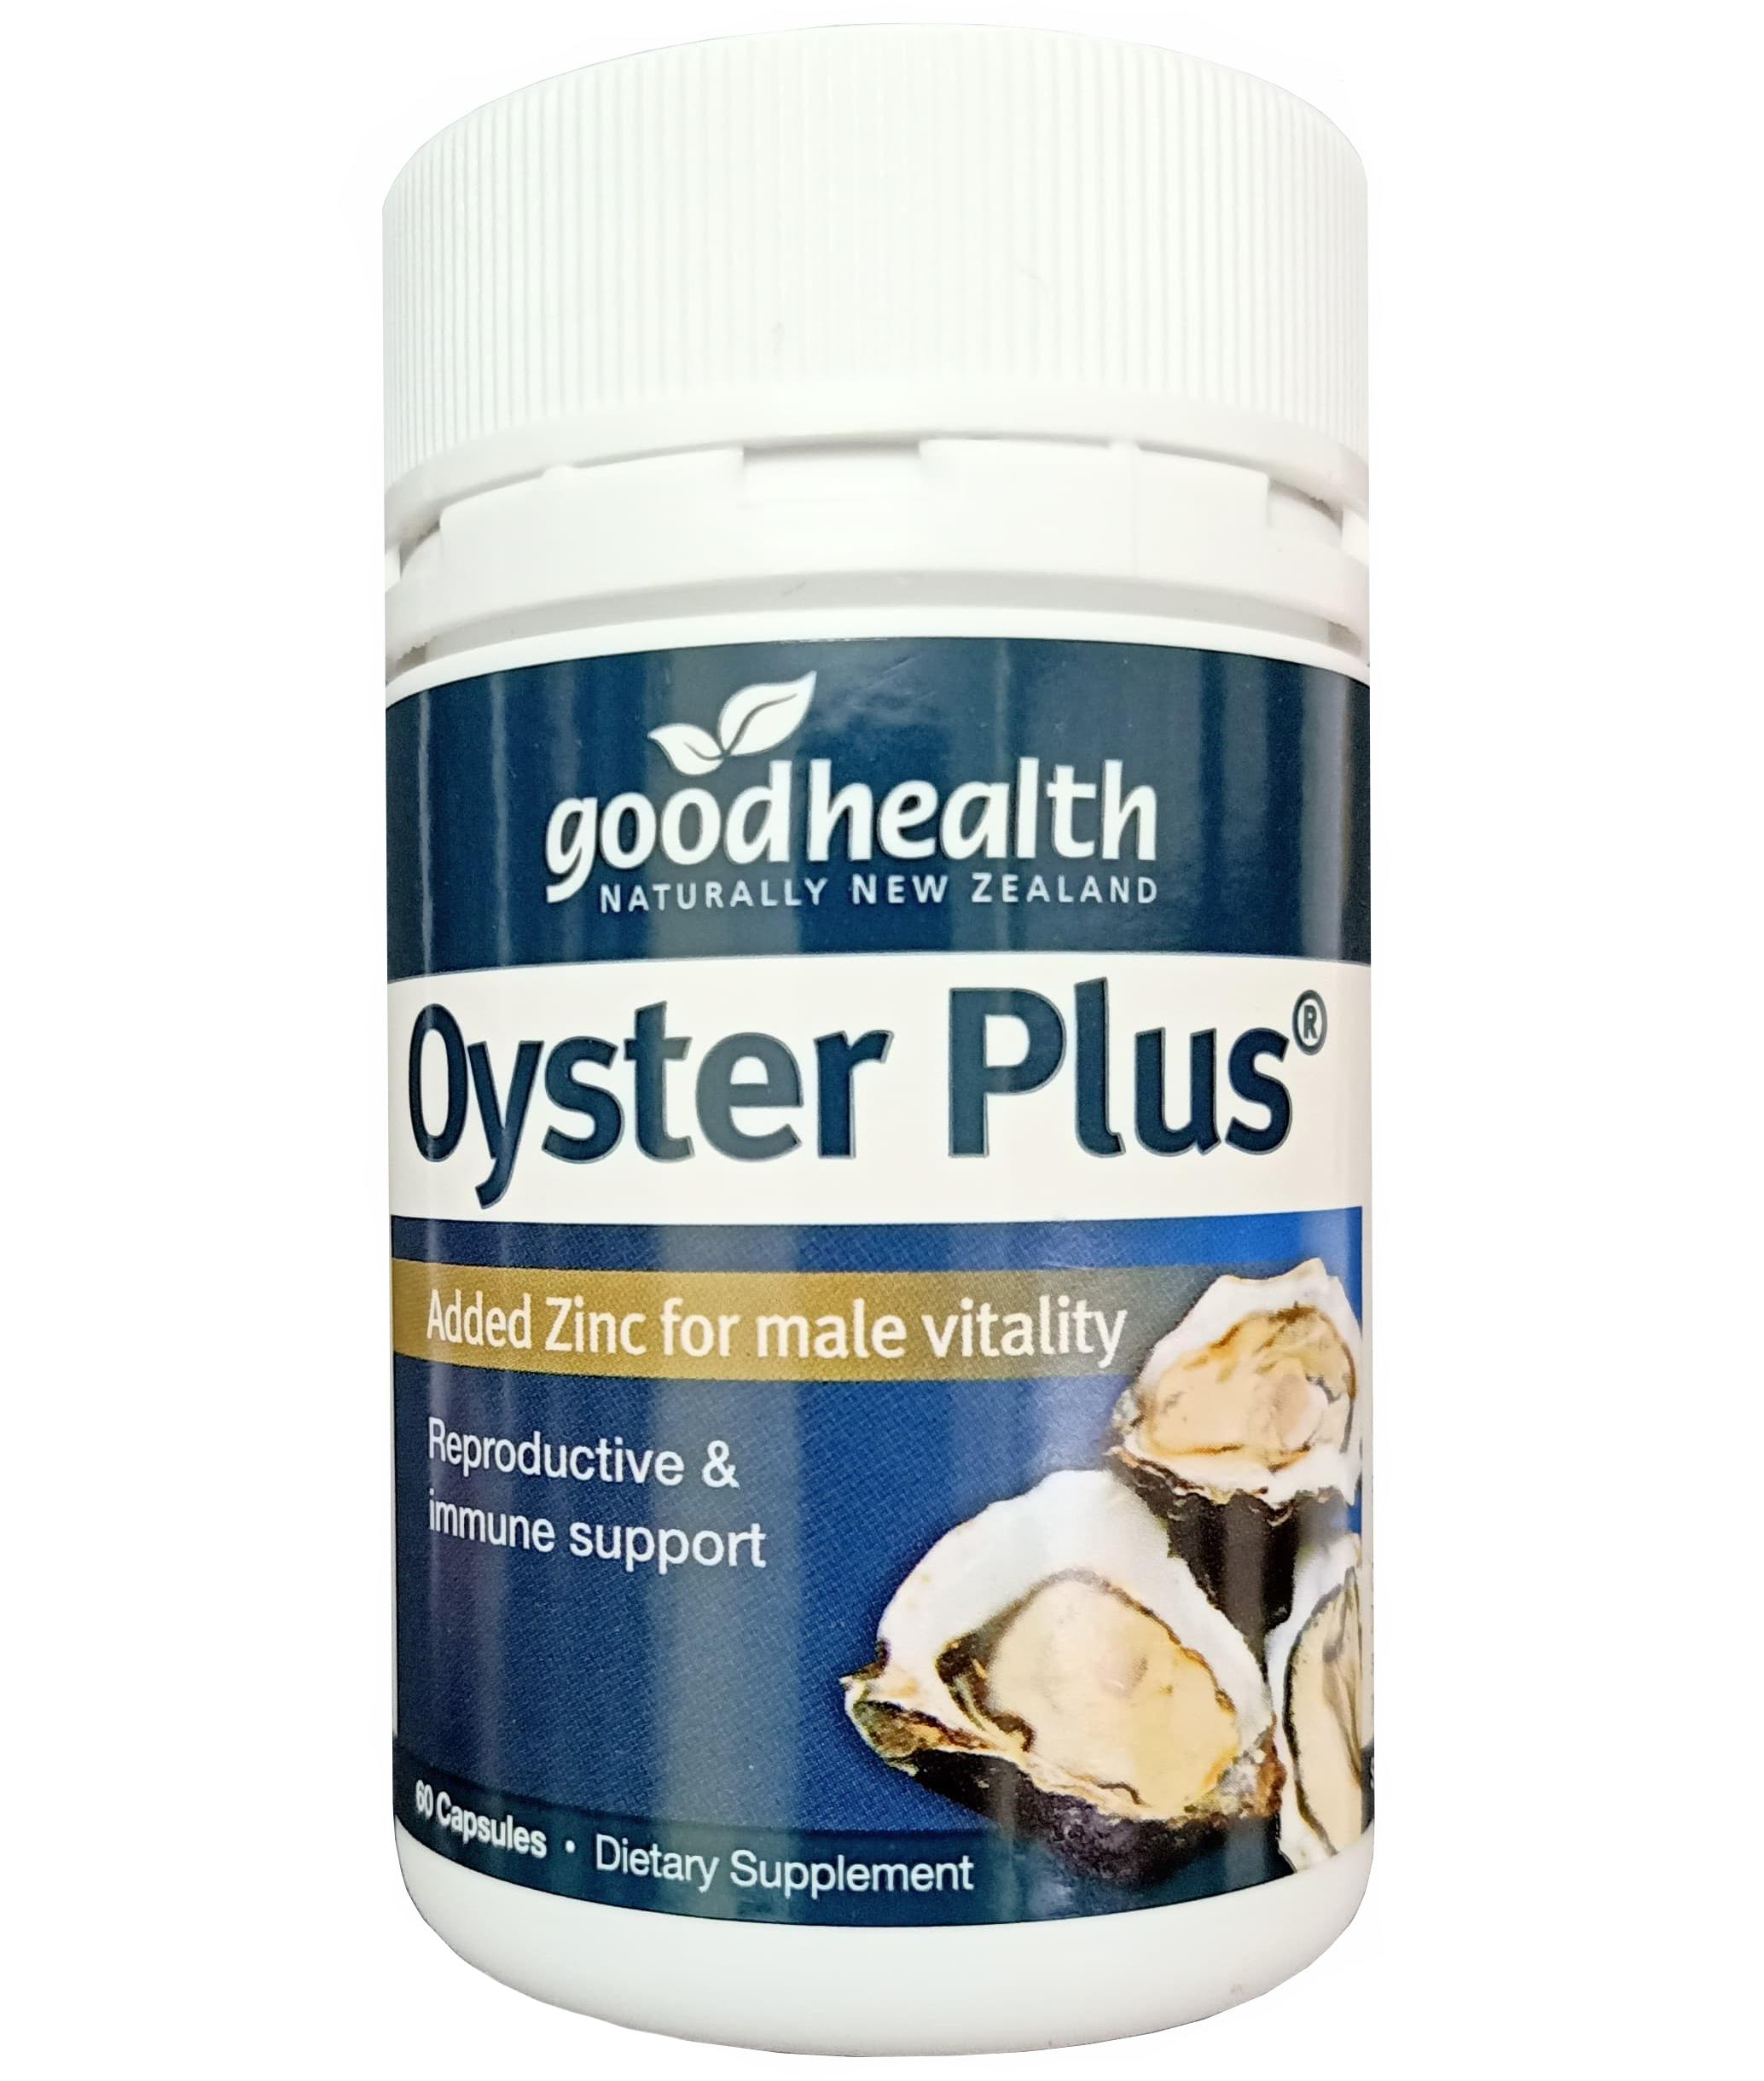 Tinh chất hàu oyster plus goodhealth (New Zealand)